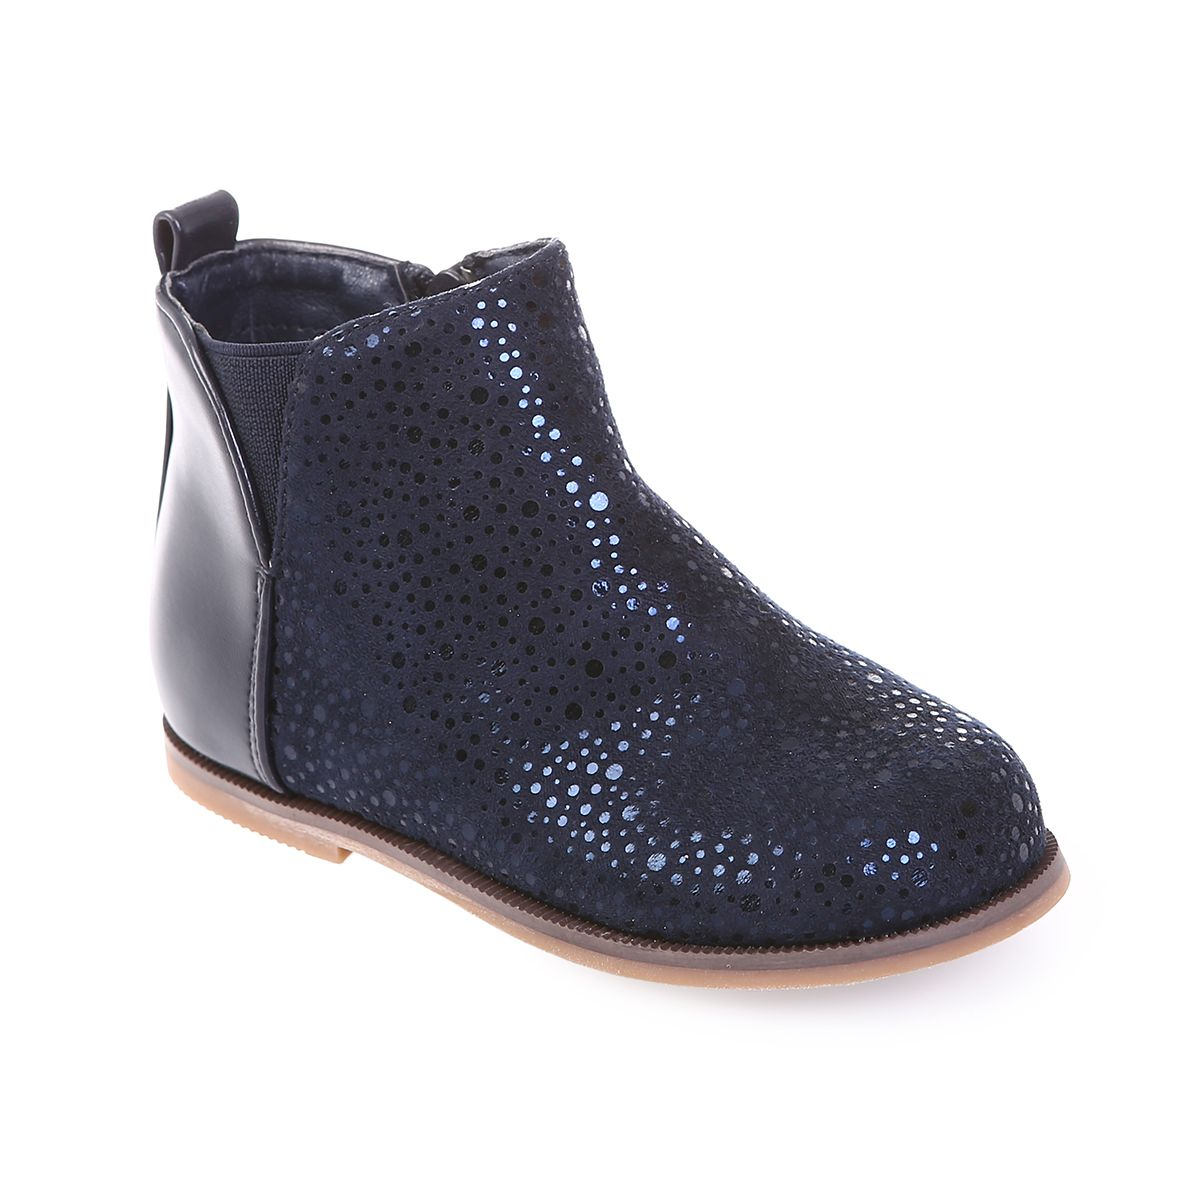 Bottines bleues marines enfant à paillettes et fantaisies. Loading zoom 1a7bf2d66e68